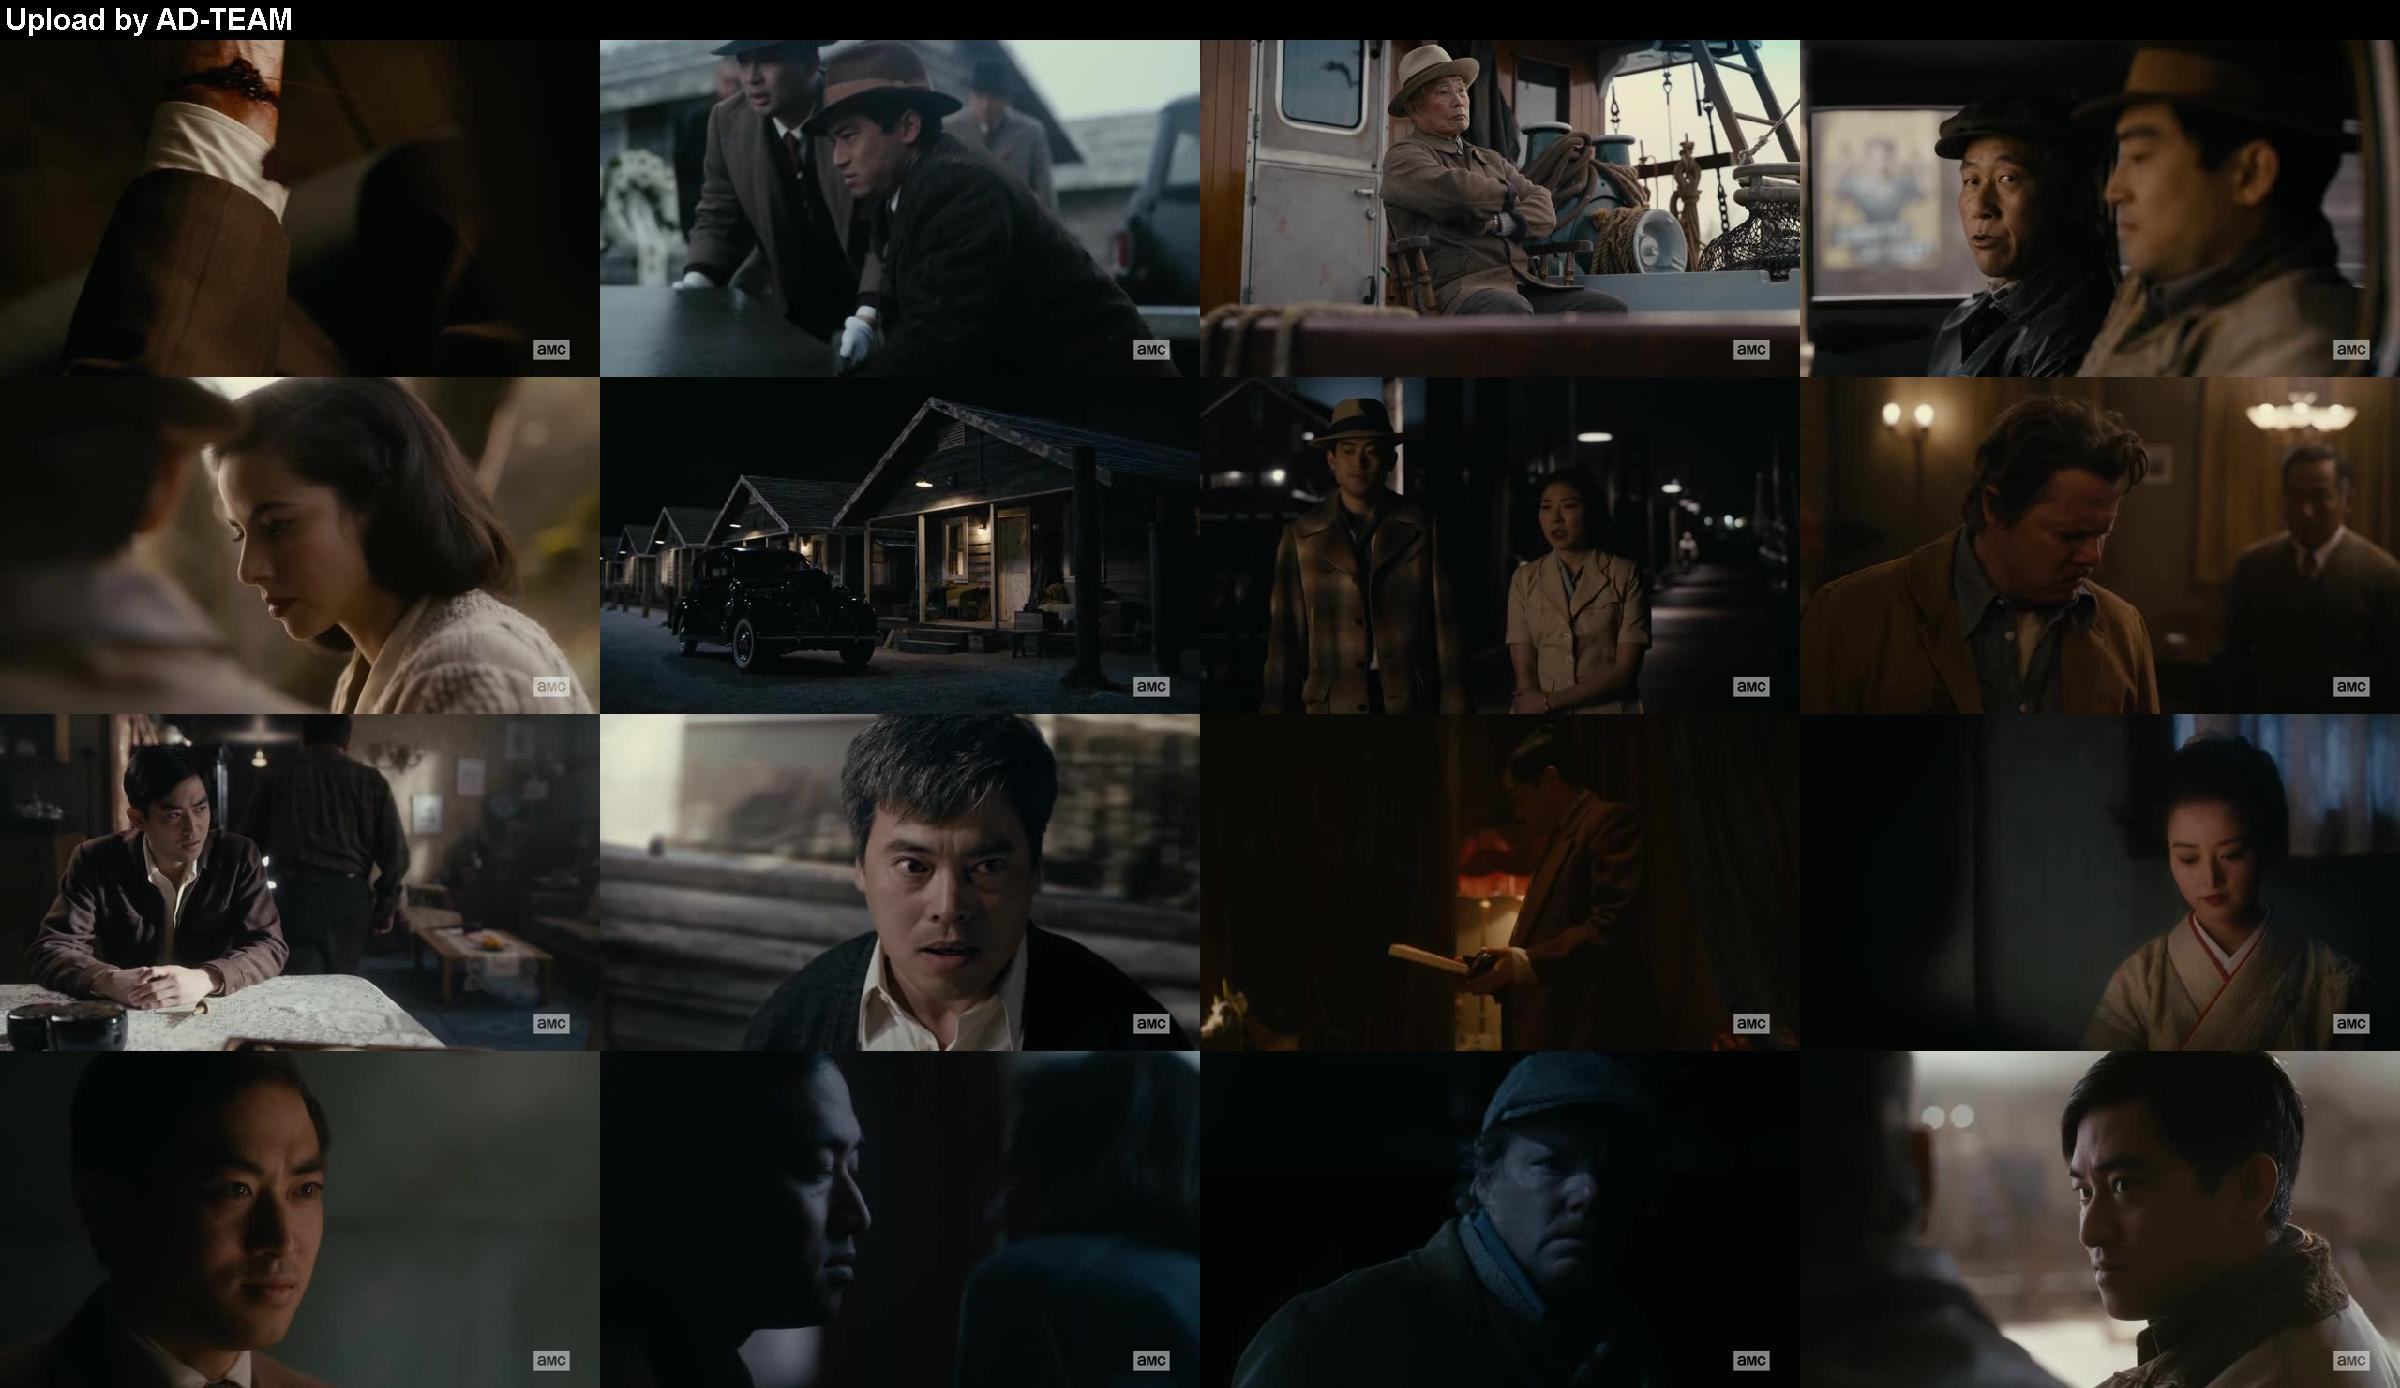 The Terror S02e01 Infamy A Sparrow In A Swallows Nest Xvid-afg